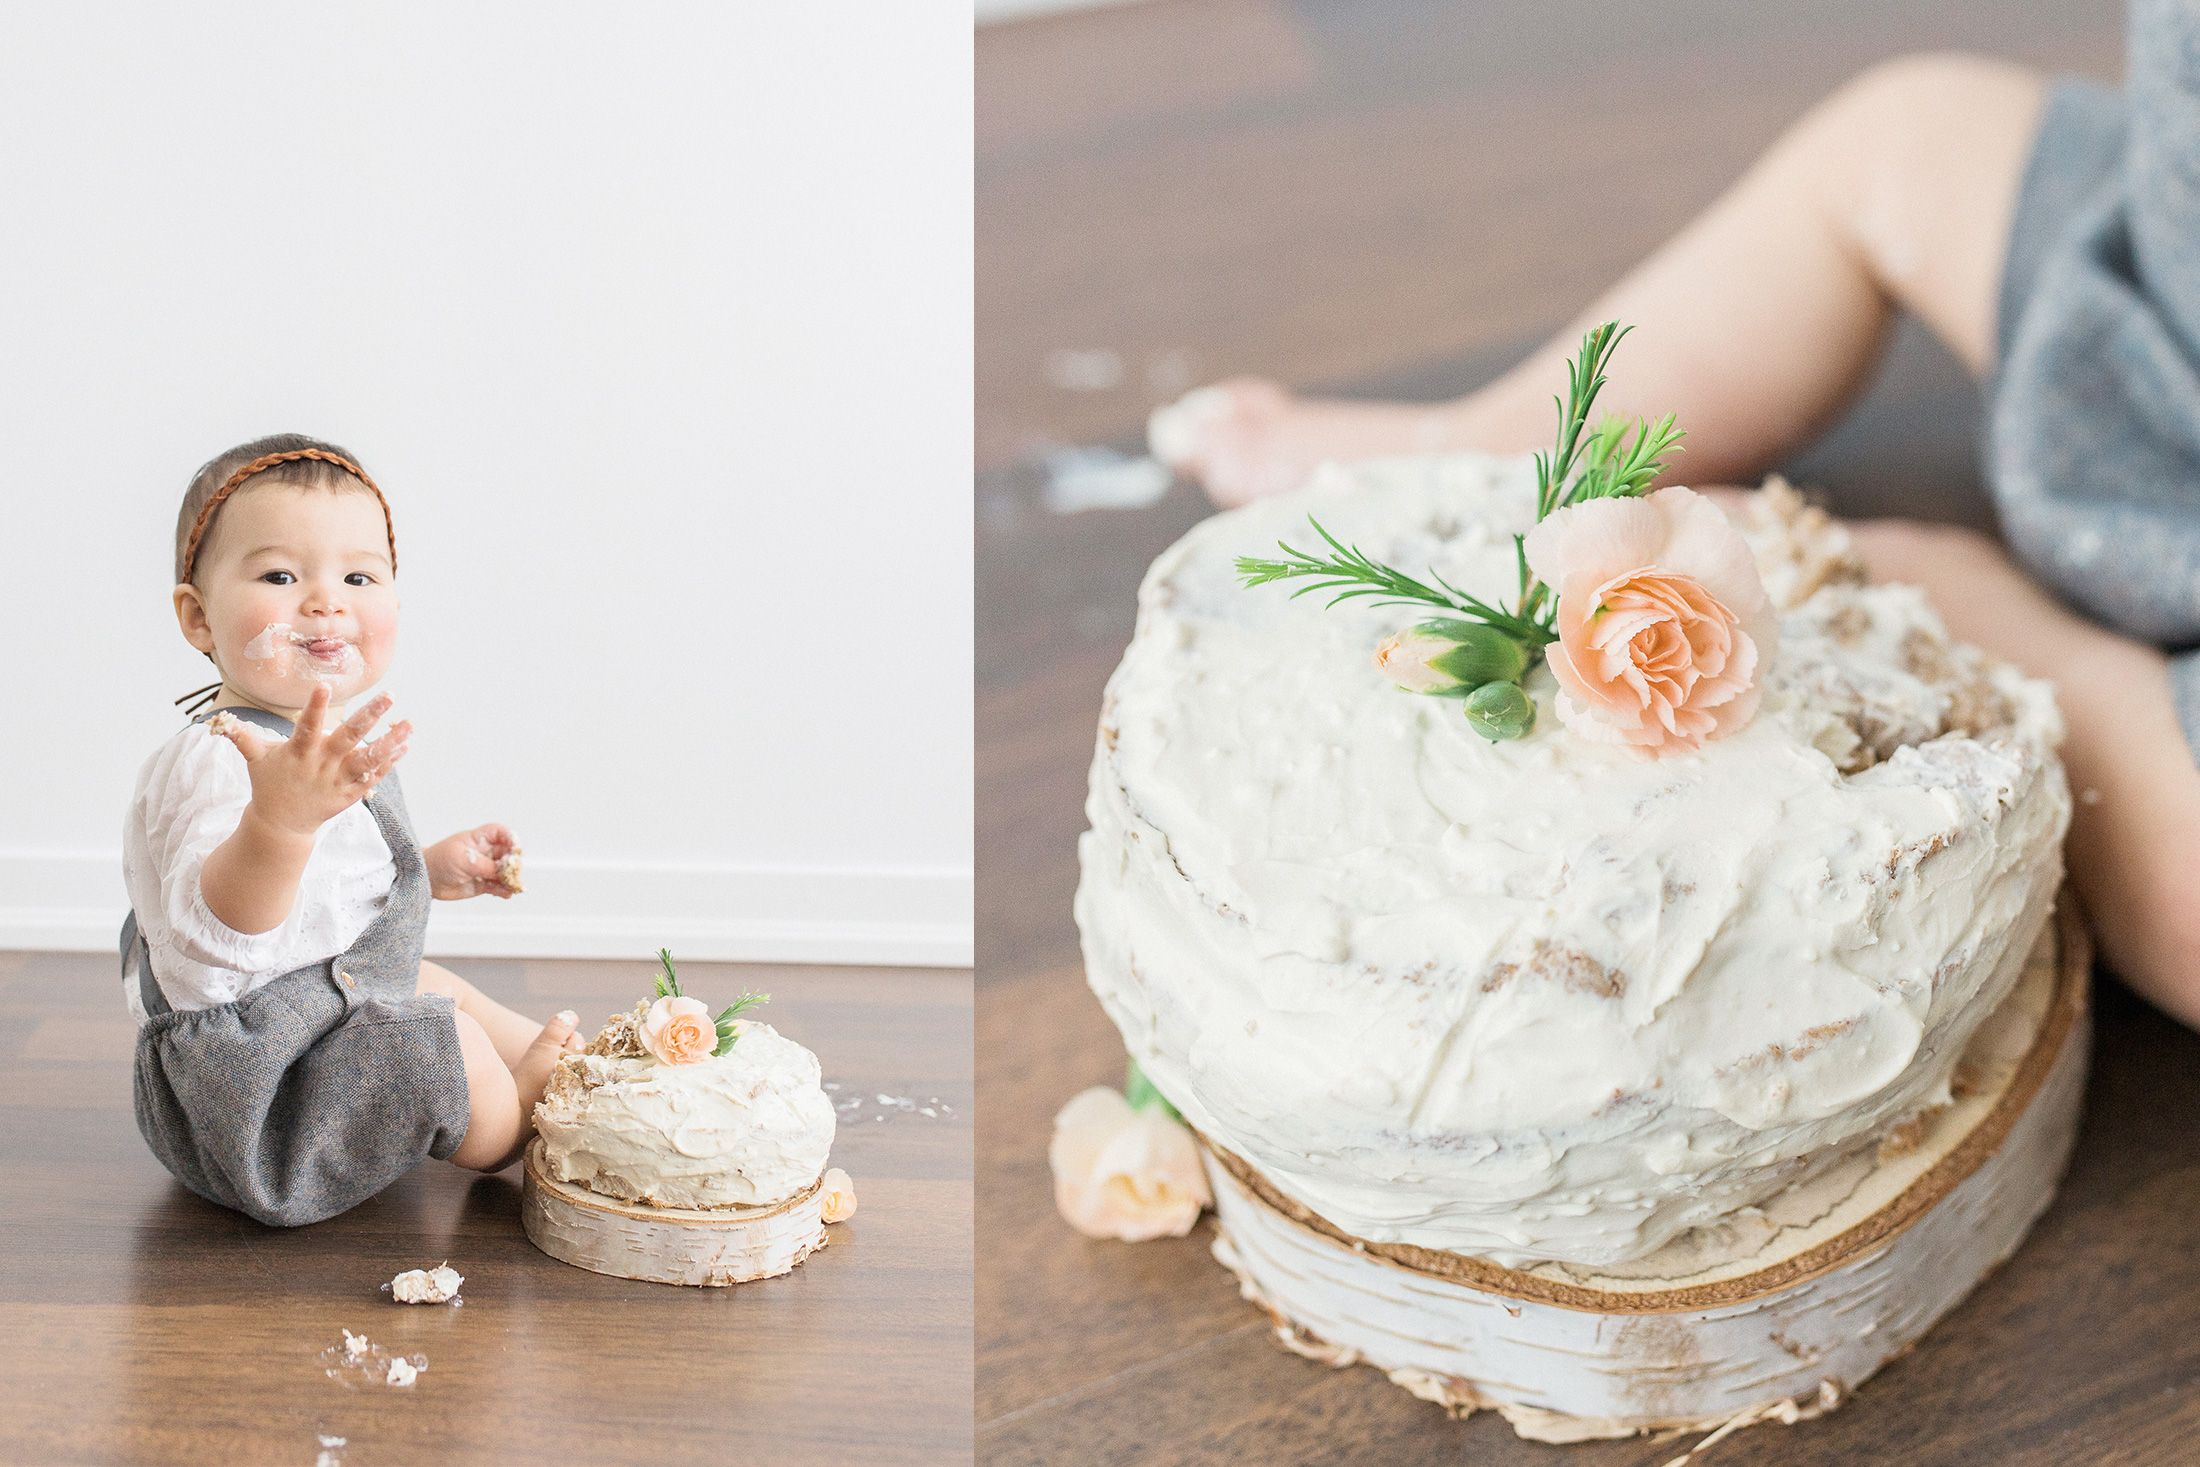 Recipe Healthy Sugar Free Smash Cake For Baby S Birthday